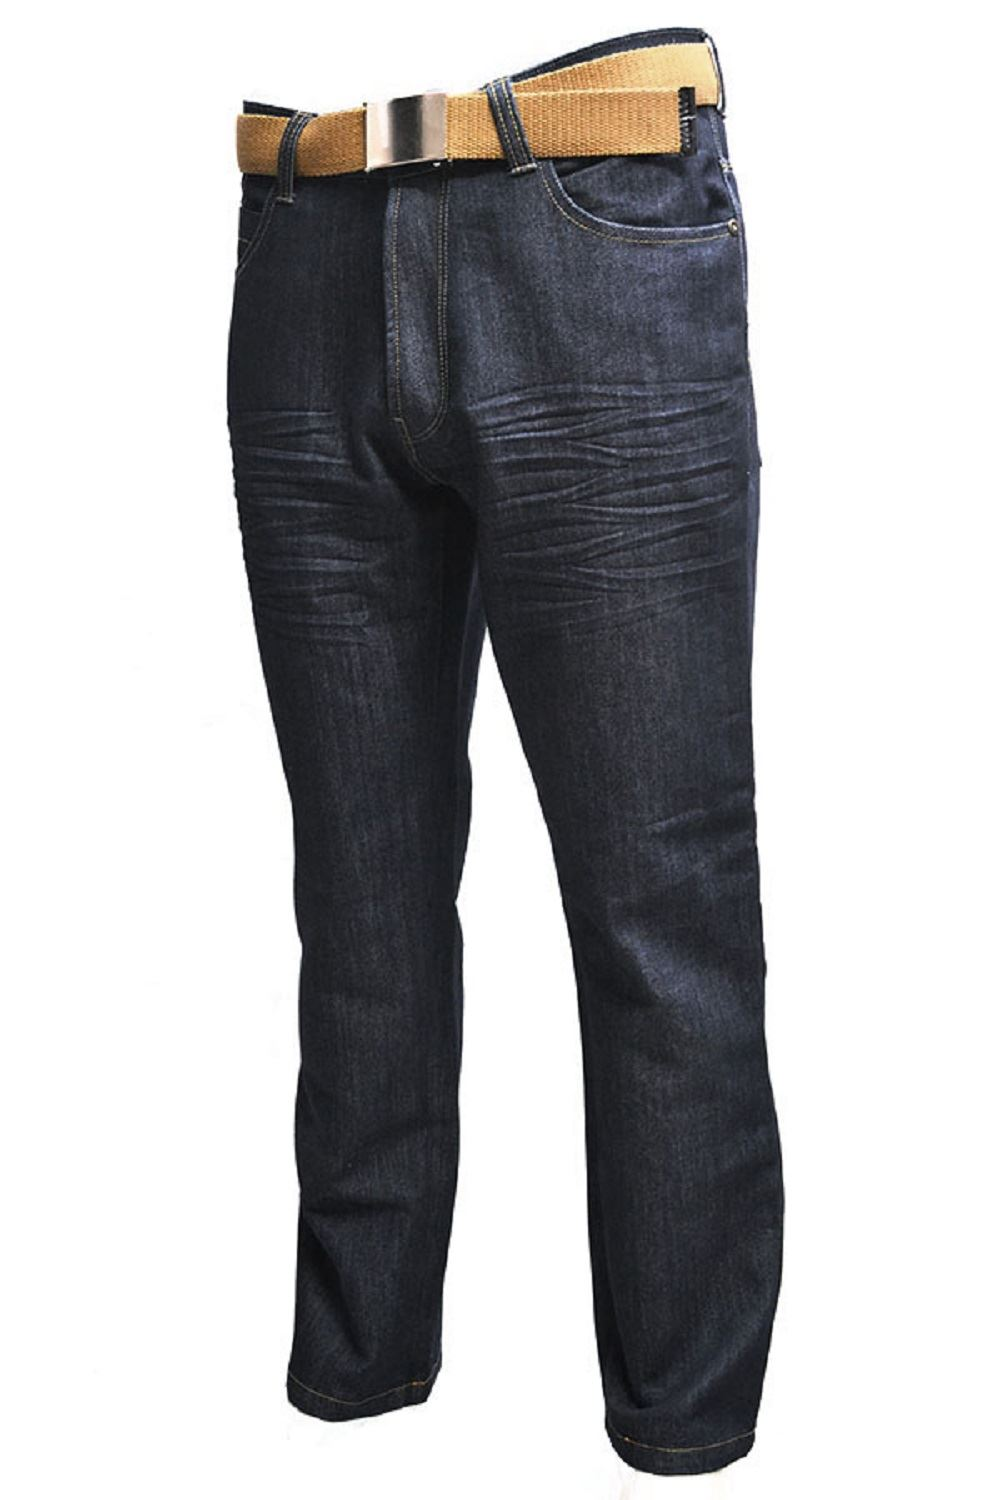 Mens-Classic-Fit-Black-Indigo-Jeans-Kori-By-Creon-Previs thumbnail 19